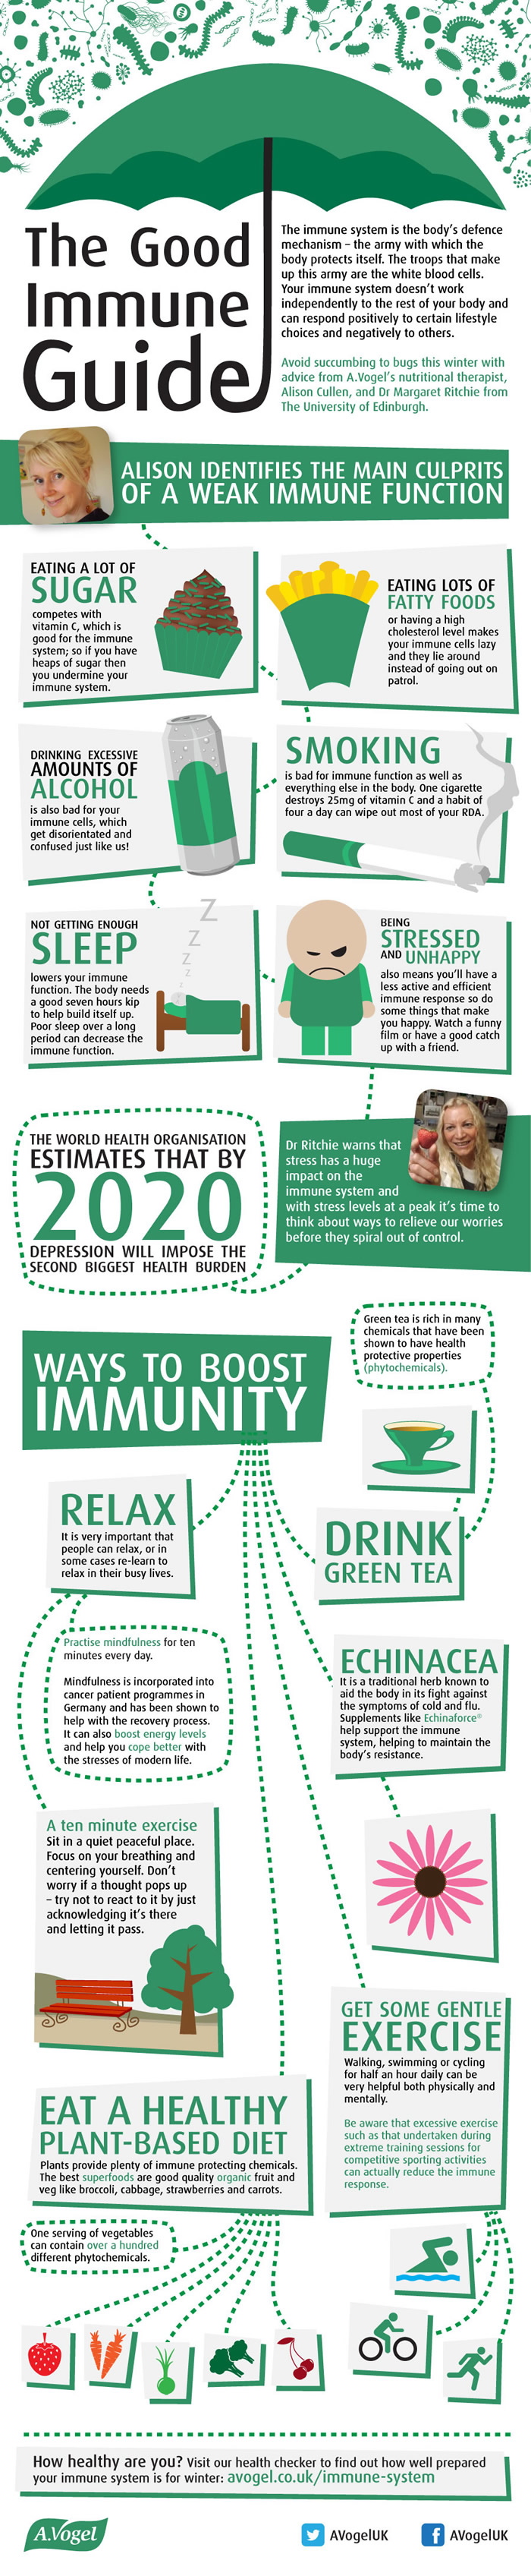 Immunity myths: how to maintain health